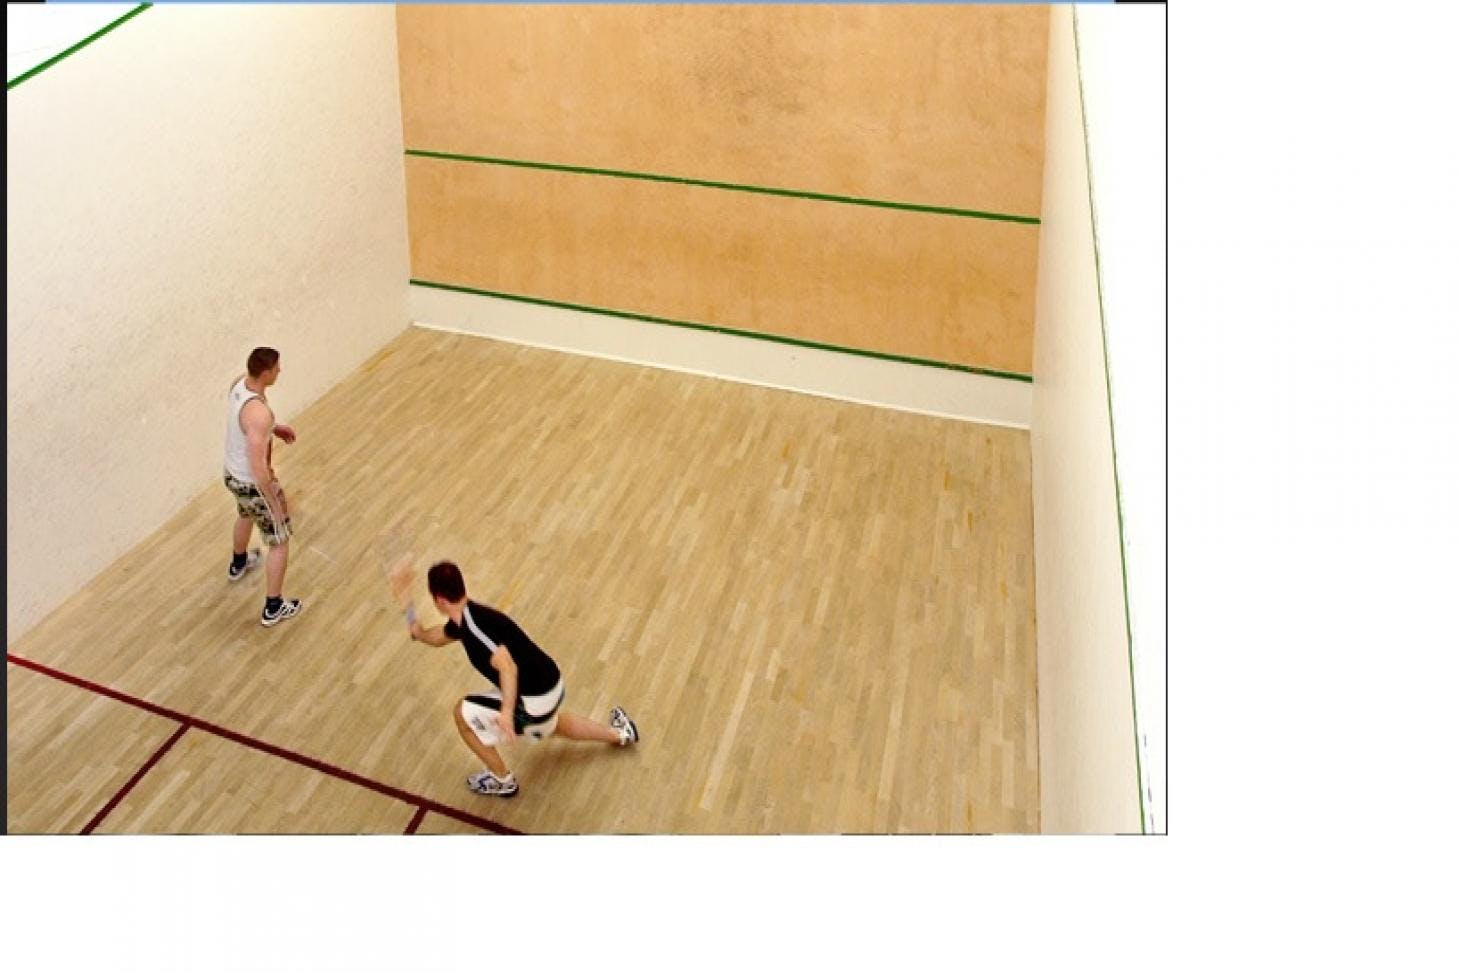 West Wood Health Club Indoor | Hard squash court